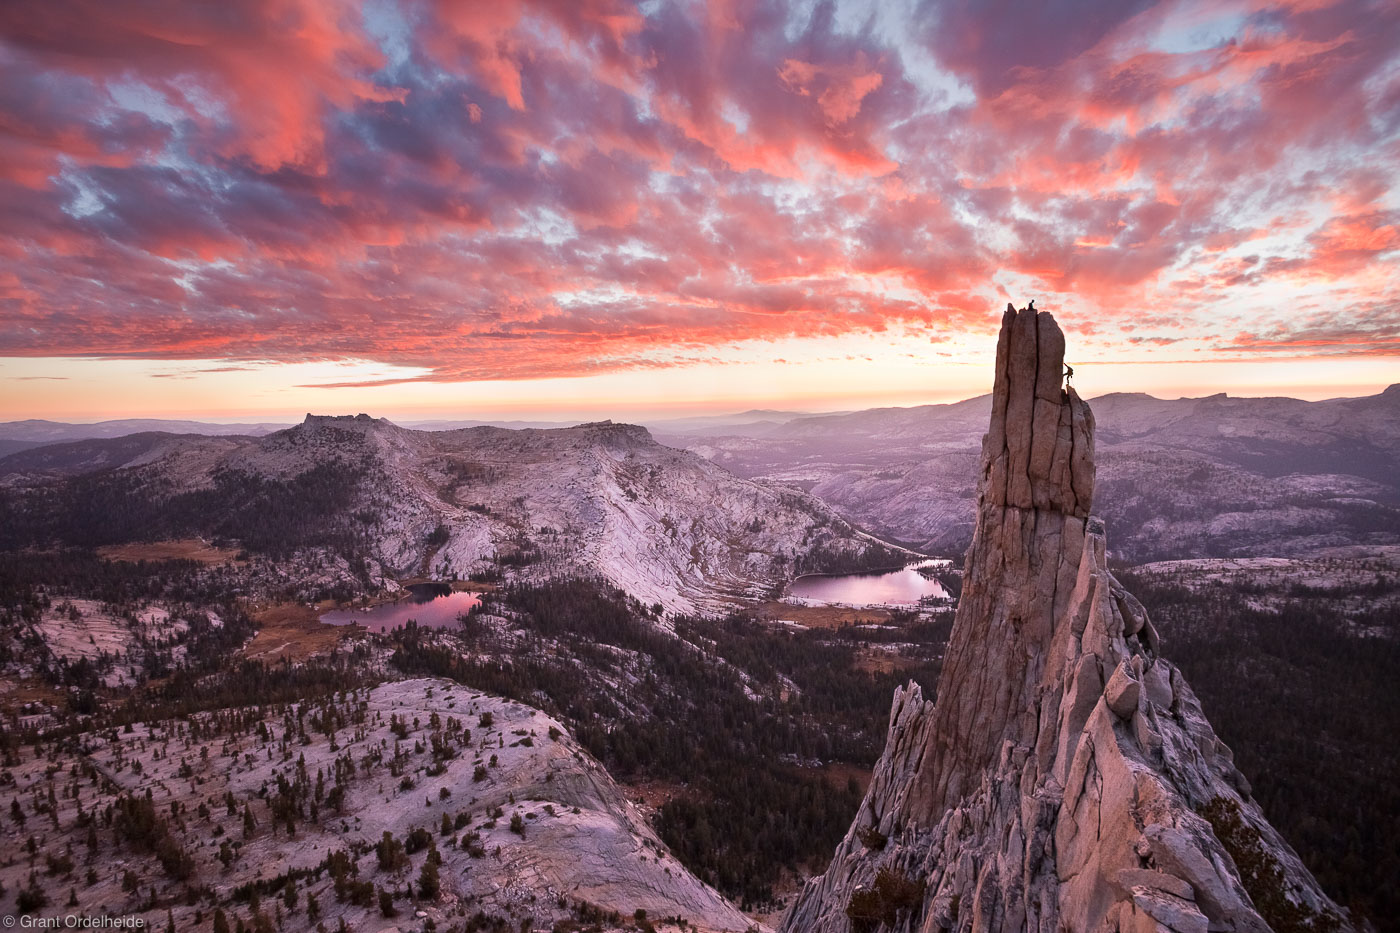 climbers, eichorn, rappelling, yosemite, national park, california, usa, cathedral peak, jules eichorn, popular, climbin, photo